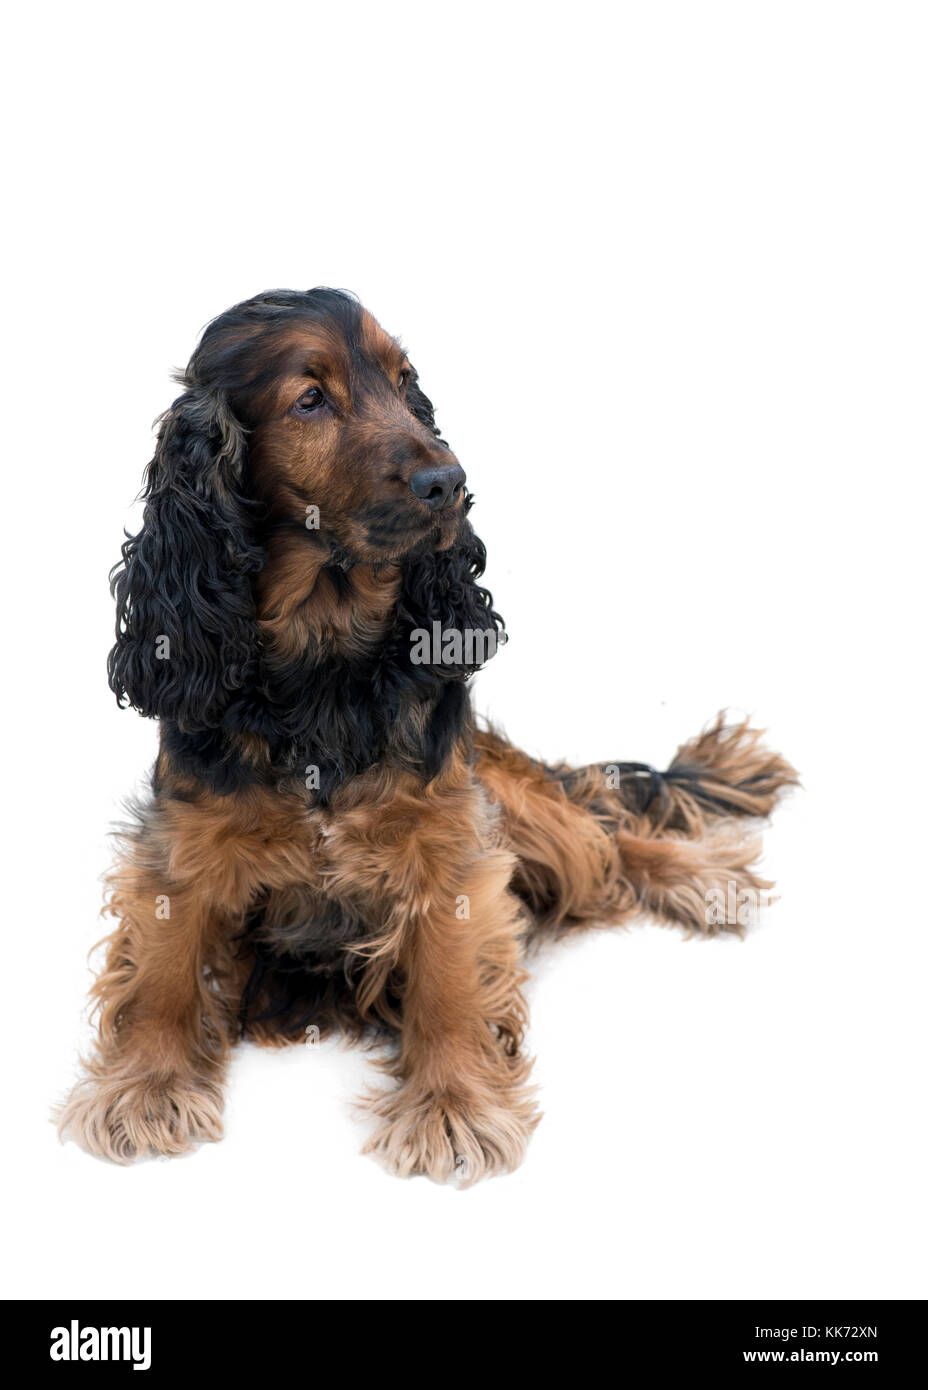 adorable obedient black and tan cocker spaniel sat looking to the side isolated on a white background - Stock Image